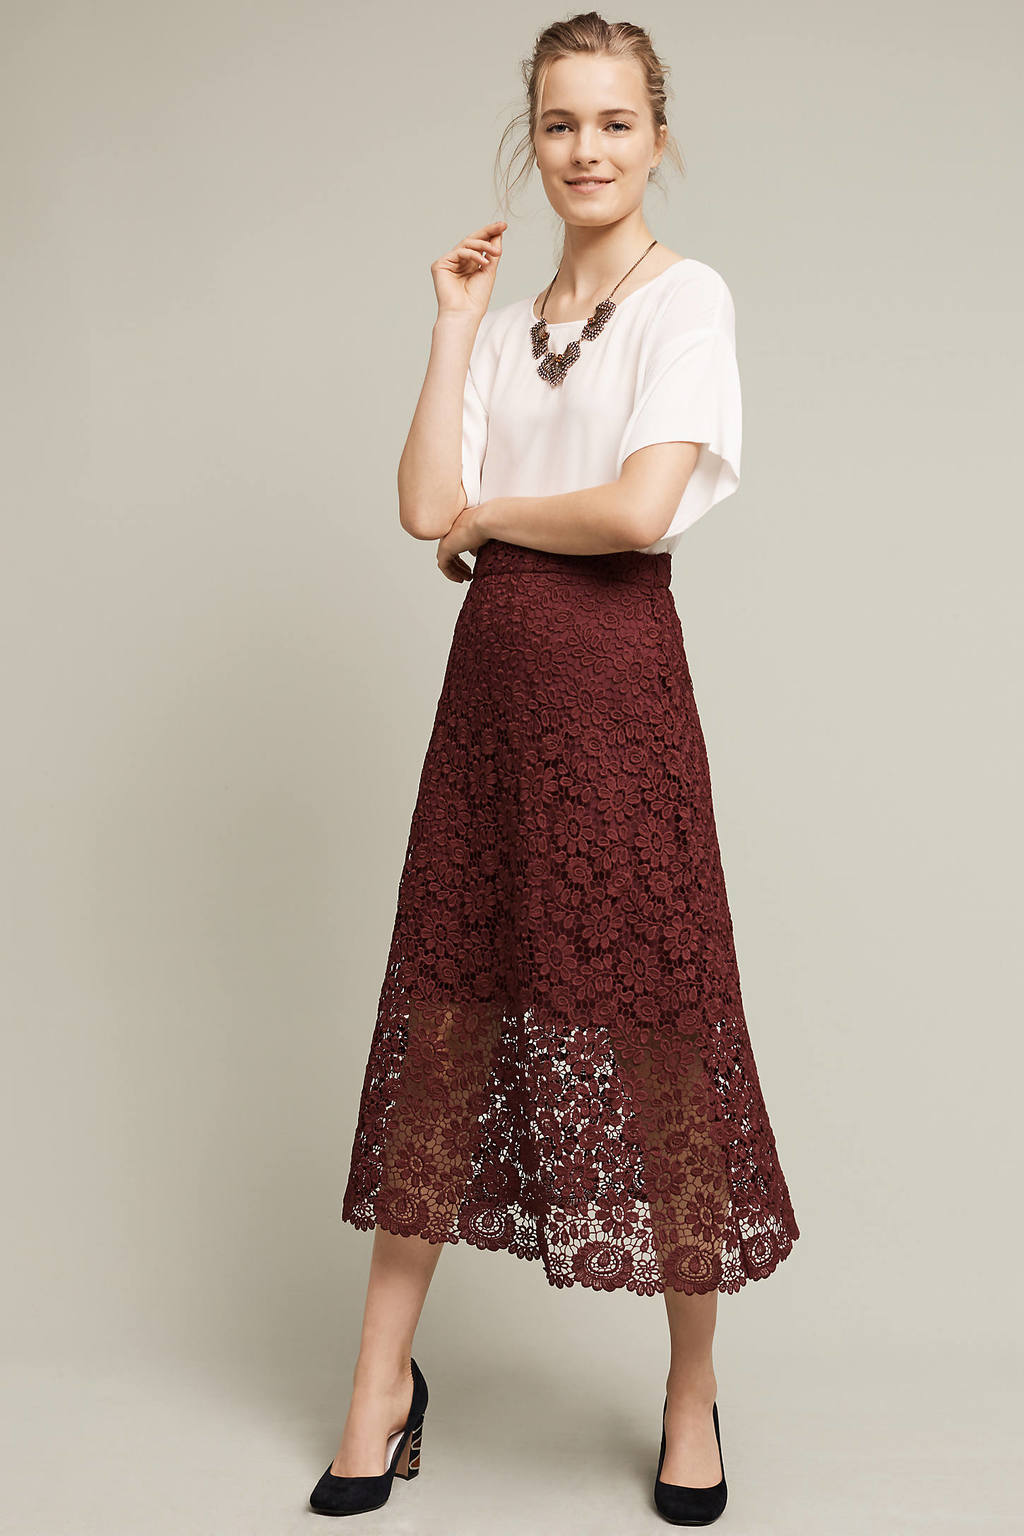 Laced Artefact Midi Skirt, Purple - length: calf length; style: full/prom skirt; fit: loose/voluminous; waist: mid/regular rise; predominant colour: burgundy; occasions: evening; fibres: polyester/polyamide - 100%; texture group: lace; pattern type: fabric; pattern: patterned/print; season: a/w 2016; wardrobe: event